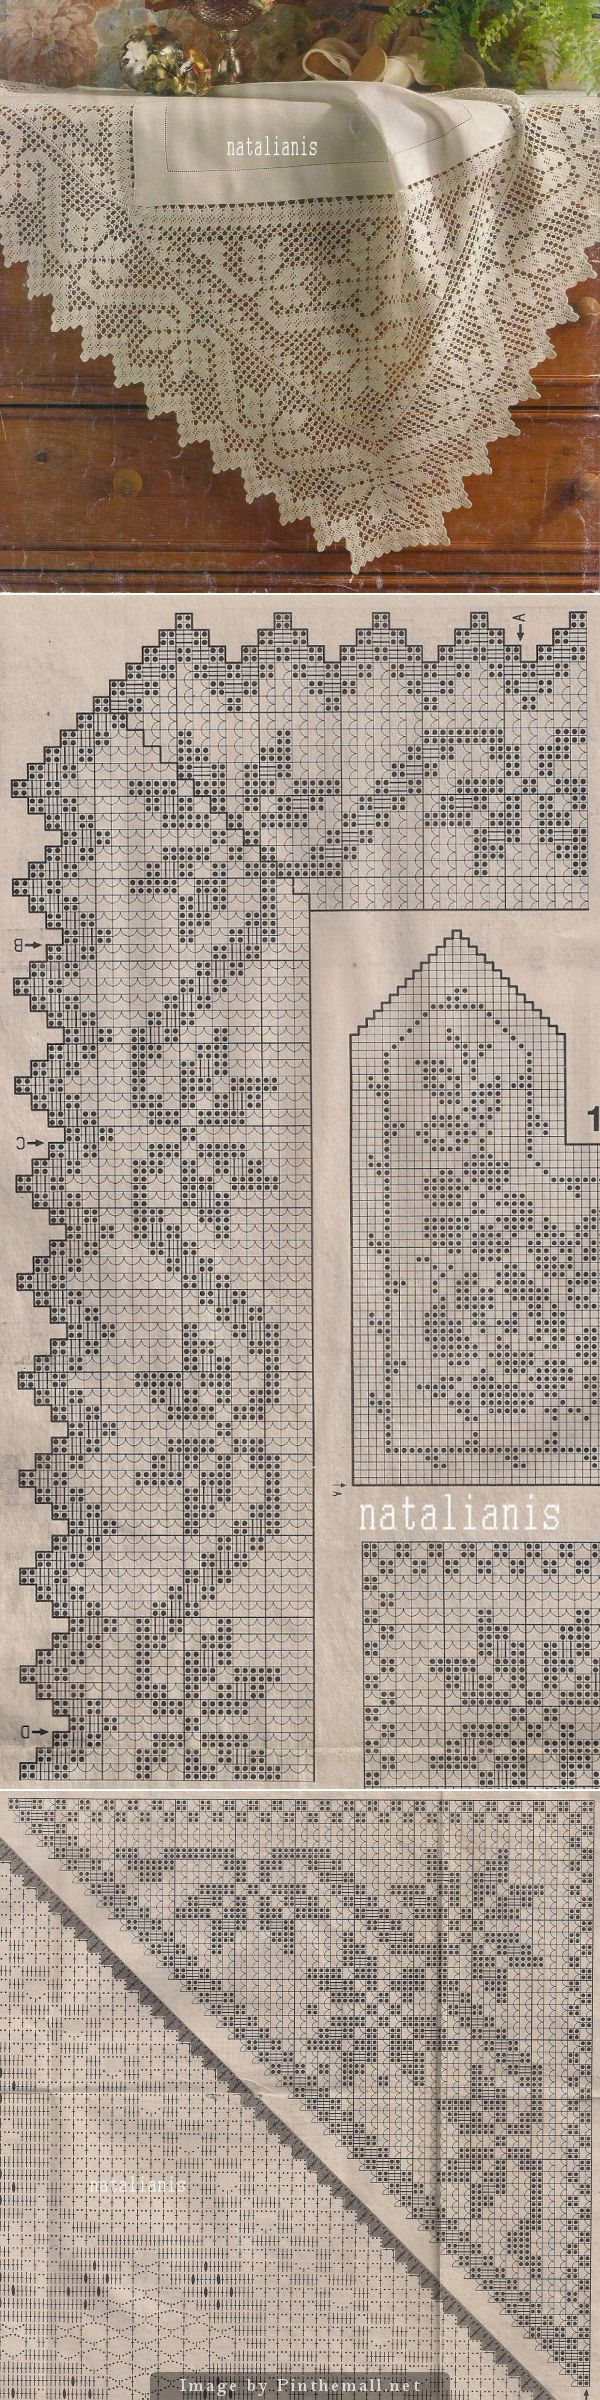 Filet crochet edging, edging's corner, corner insert ~~ http://natalianis.livejournal.com/ More